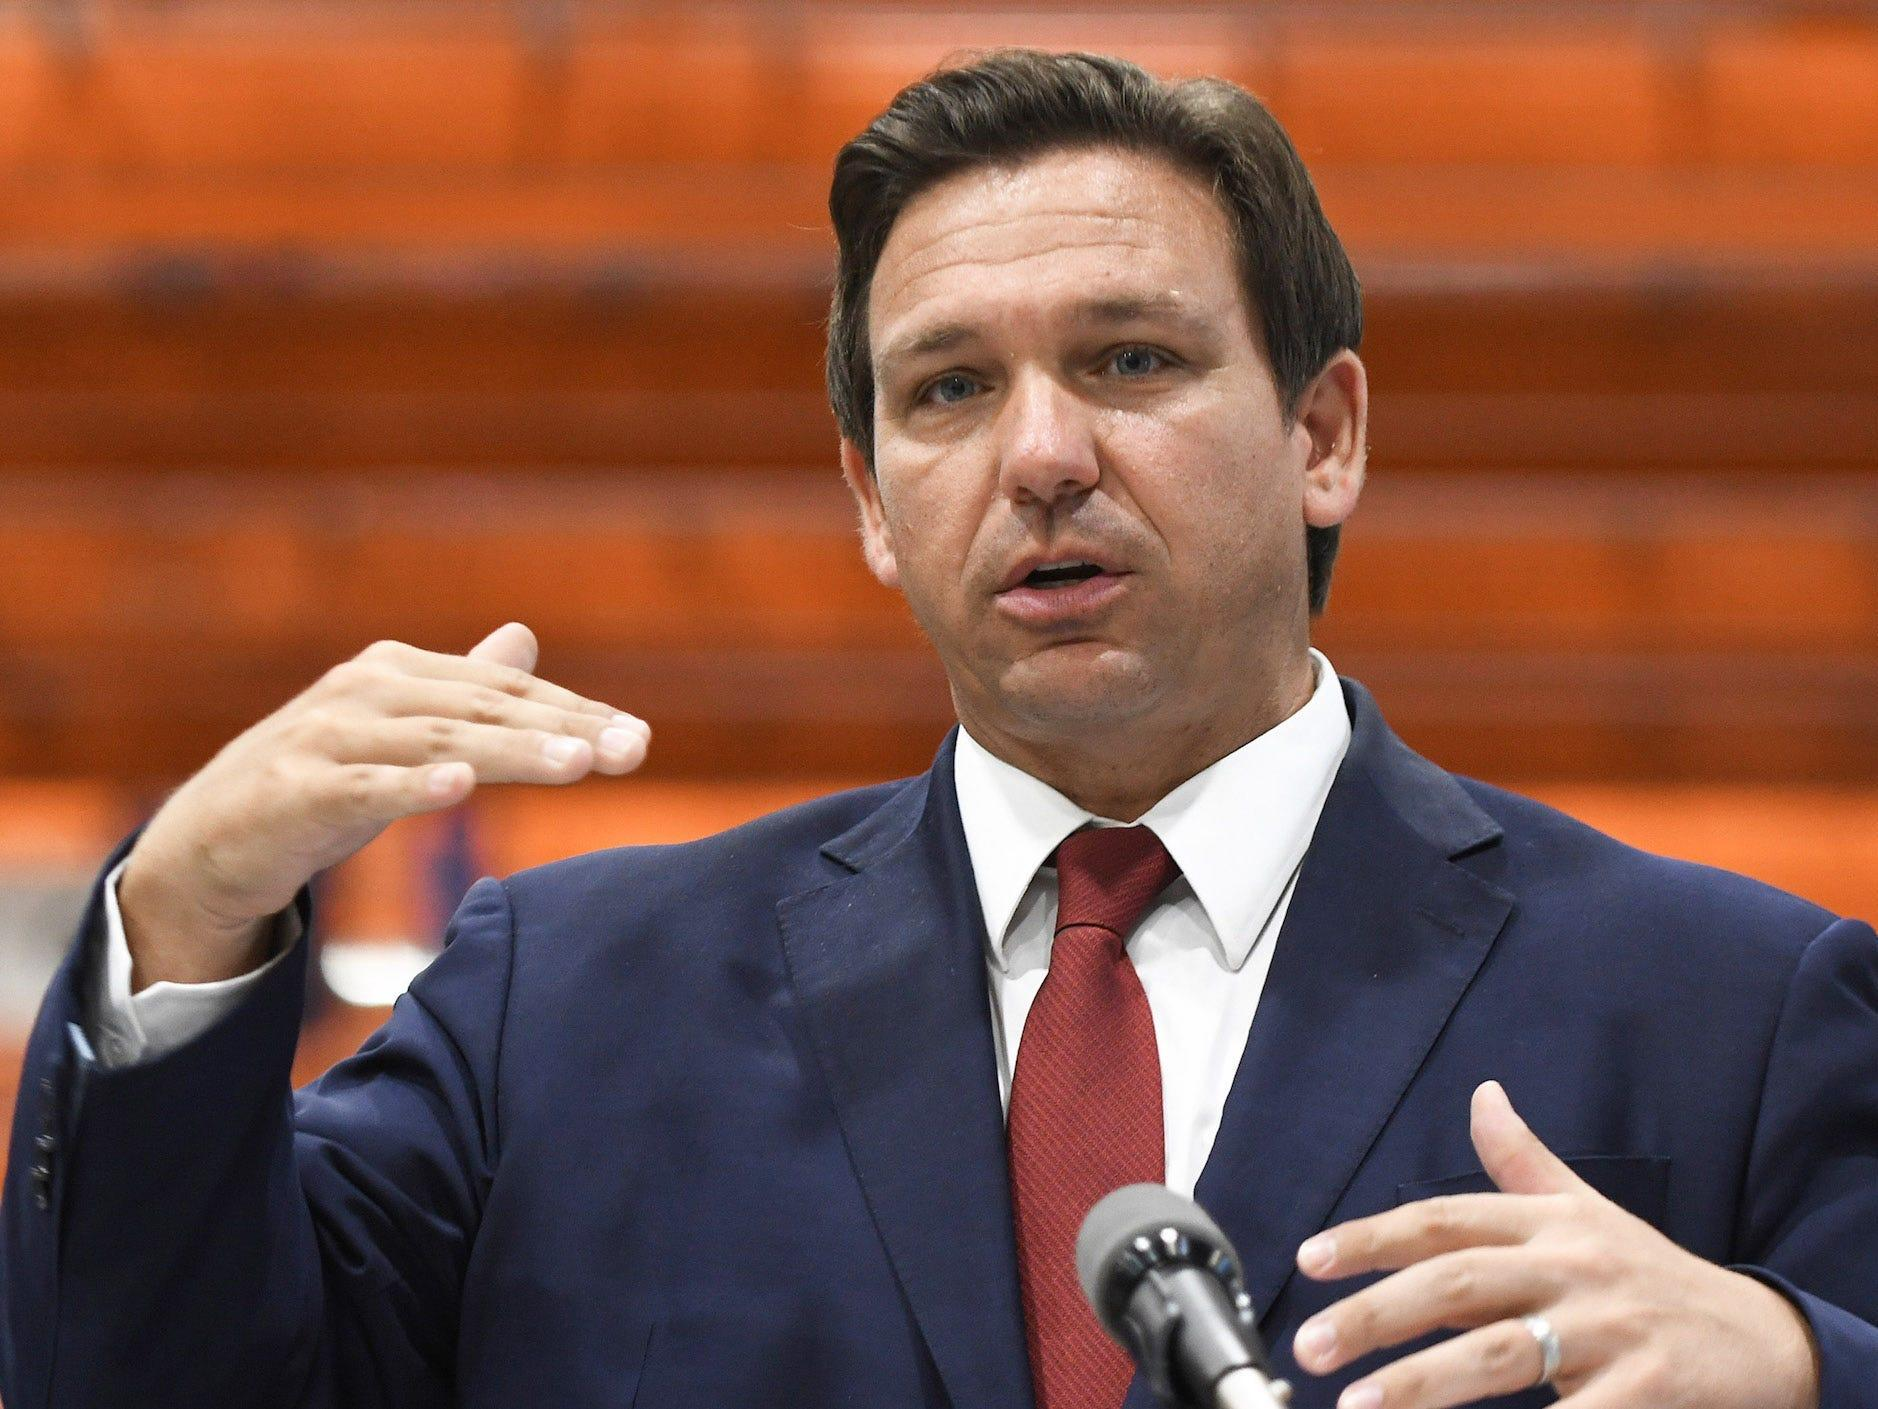 4 teachers died of COVID within 24 hours in Broward County, Florida. Schools there are defying Gov. DeSantis' ban on mask mandates.